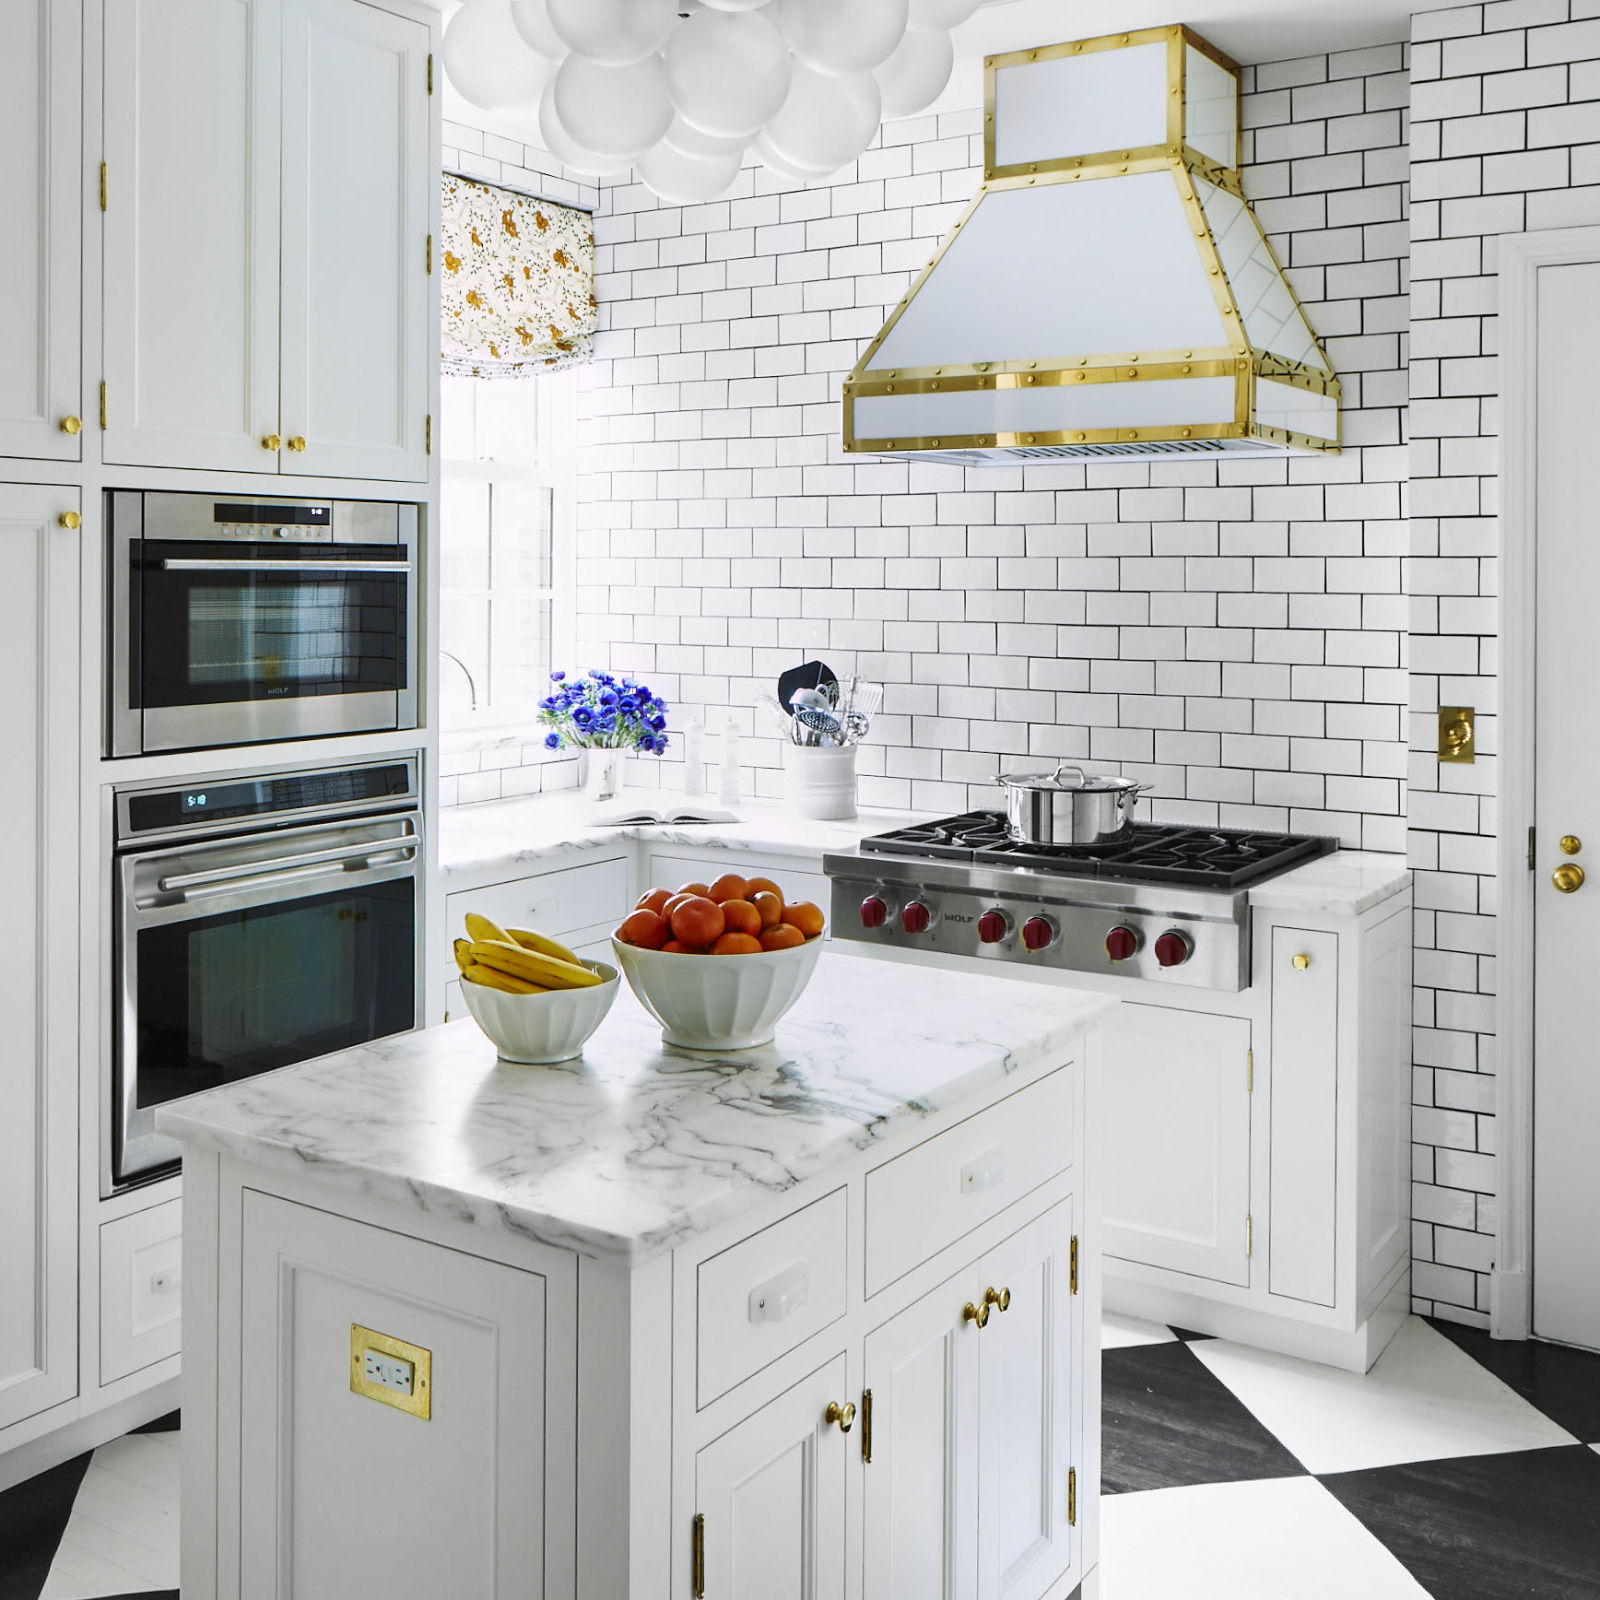 Designs Kitchen: Dream Big: Stylish Designs For Small Kitchens